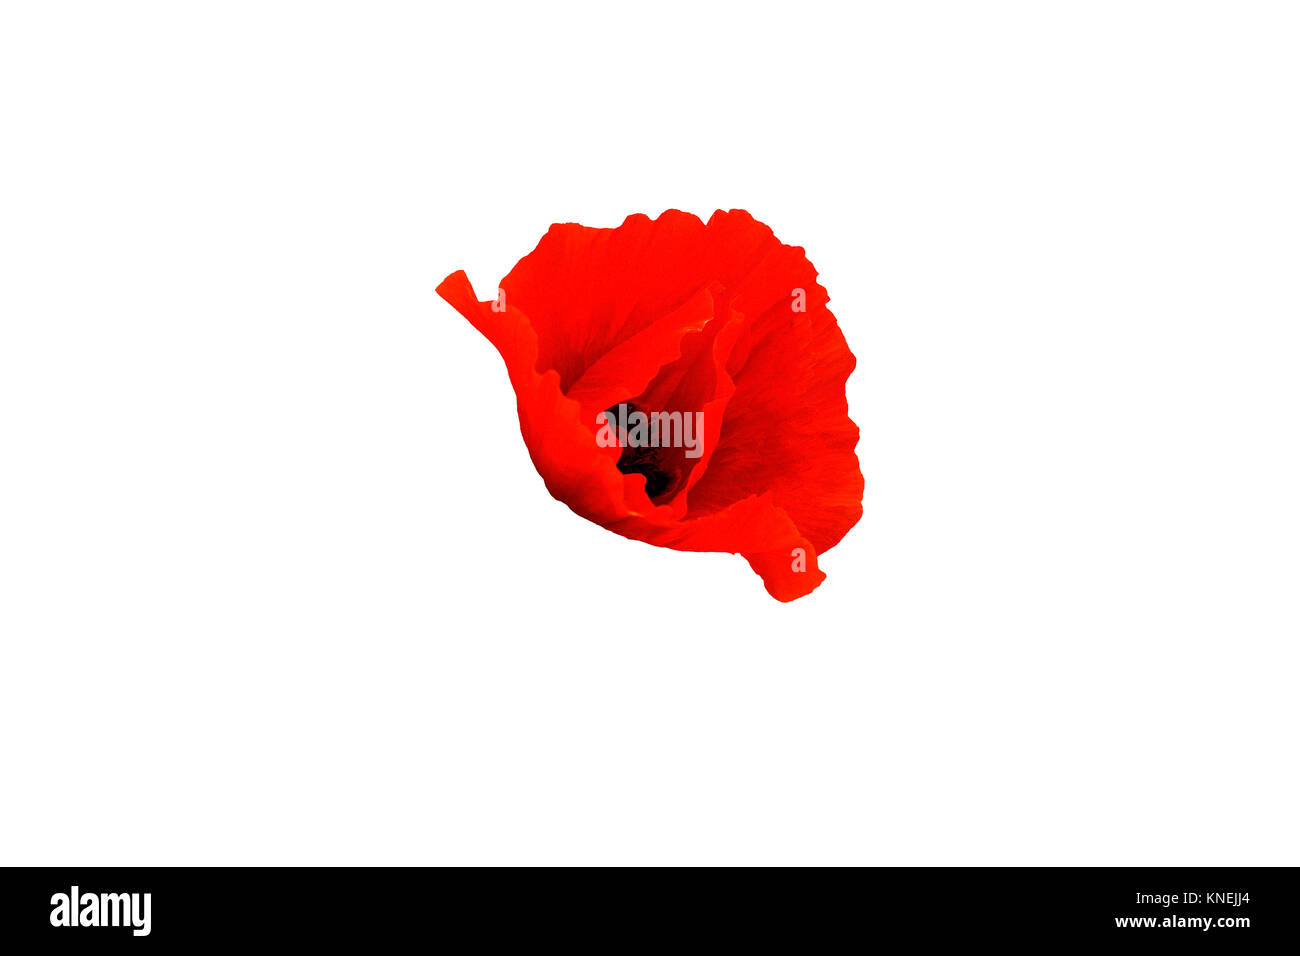 Red poppy flower isolated on white background, side view - Stock Image